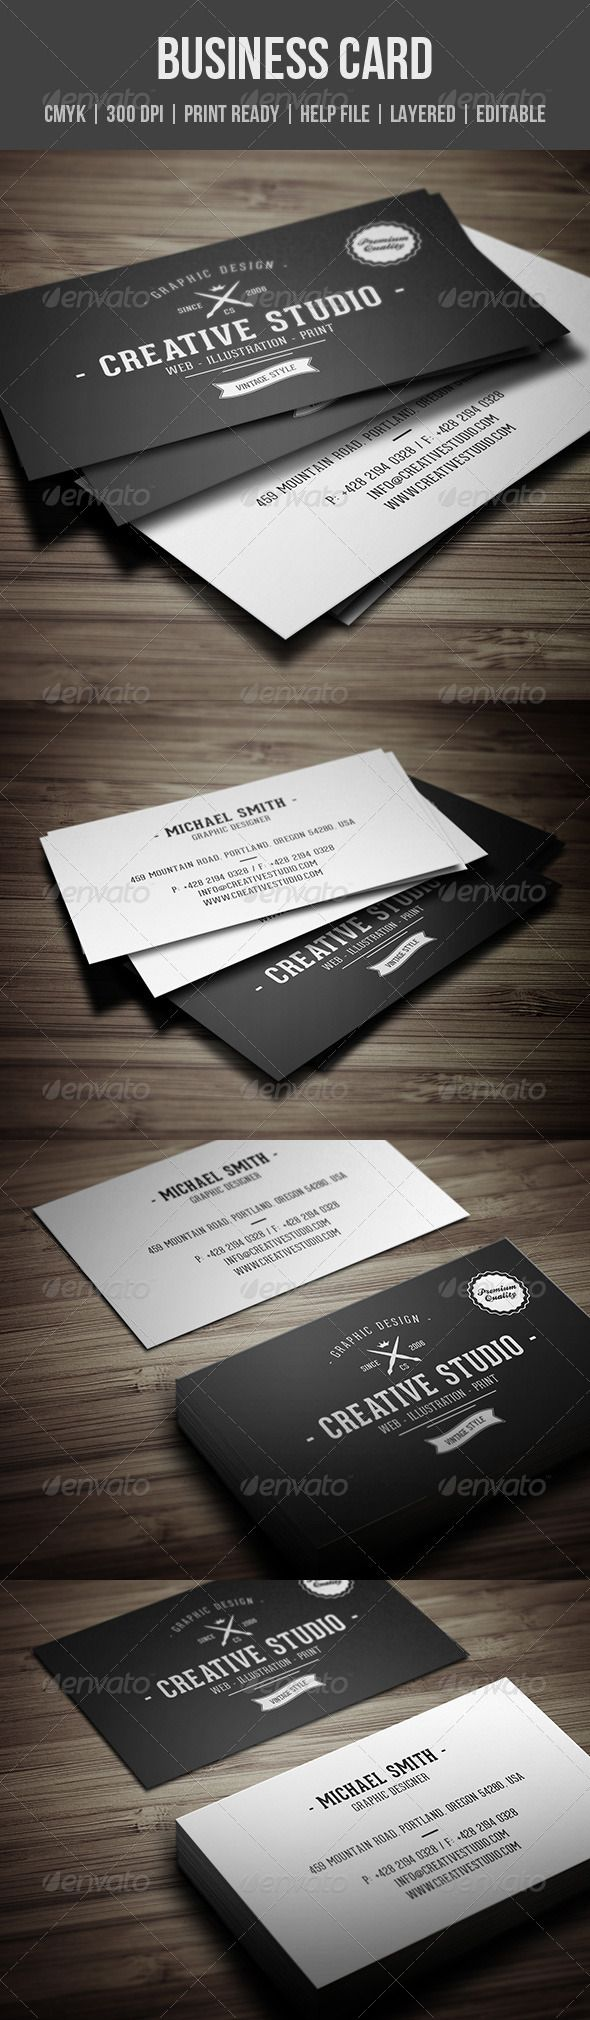 Vintage Business Card Business Cards Minimal Business Card And